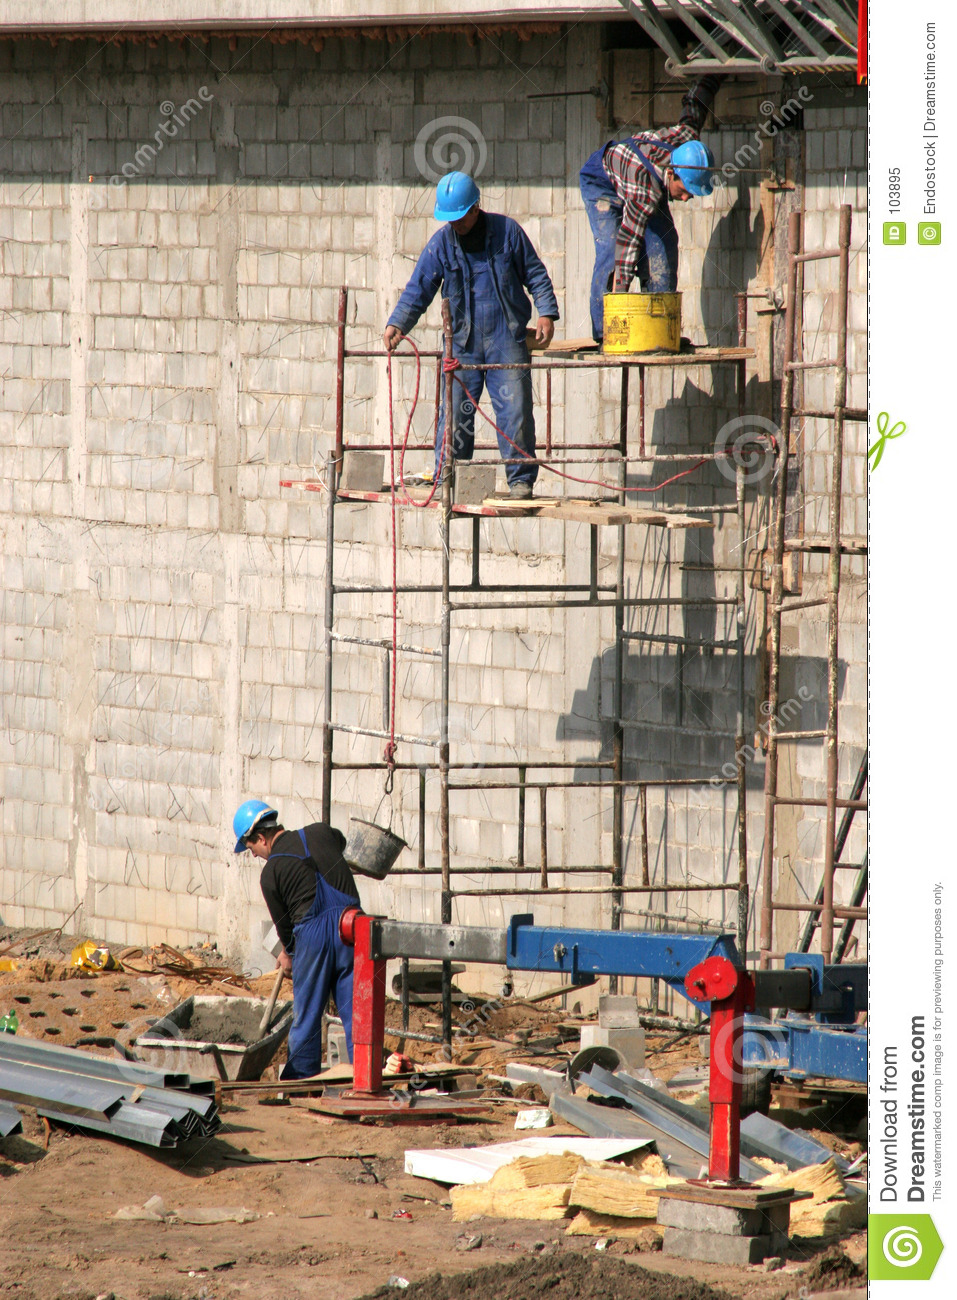 Bricklayers on scaffolding